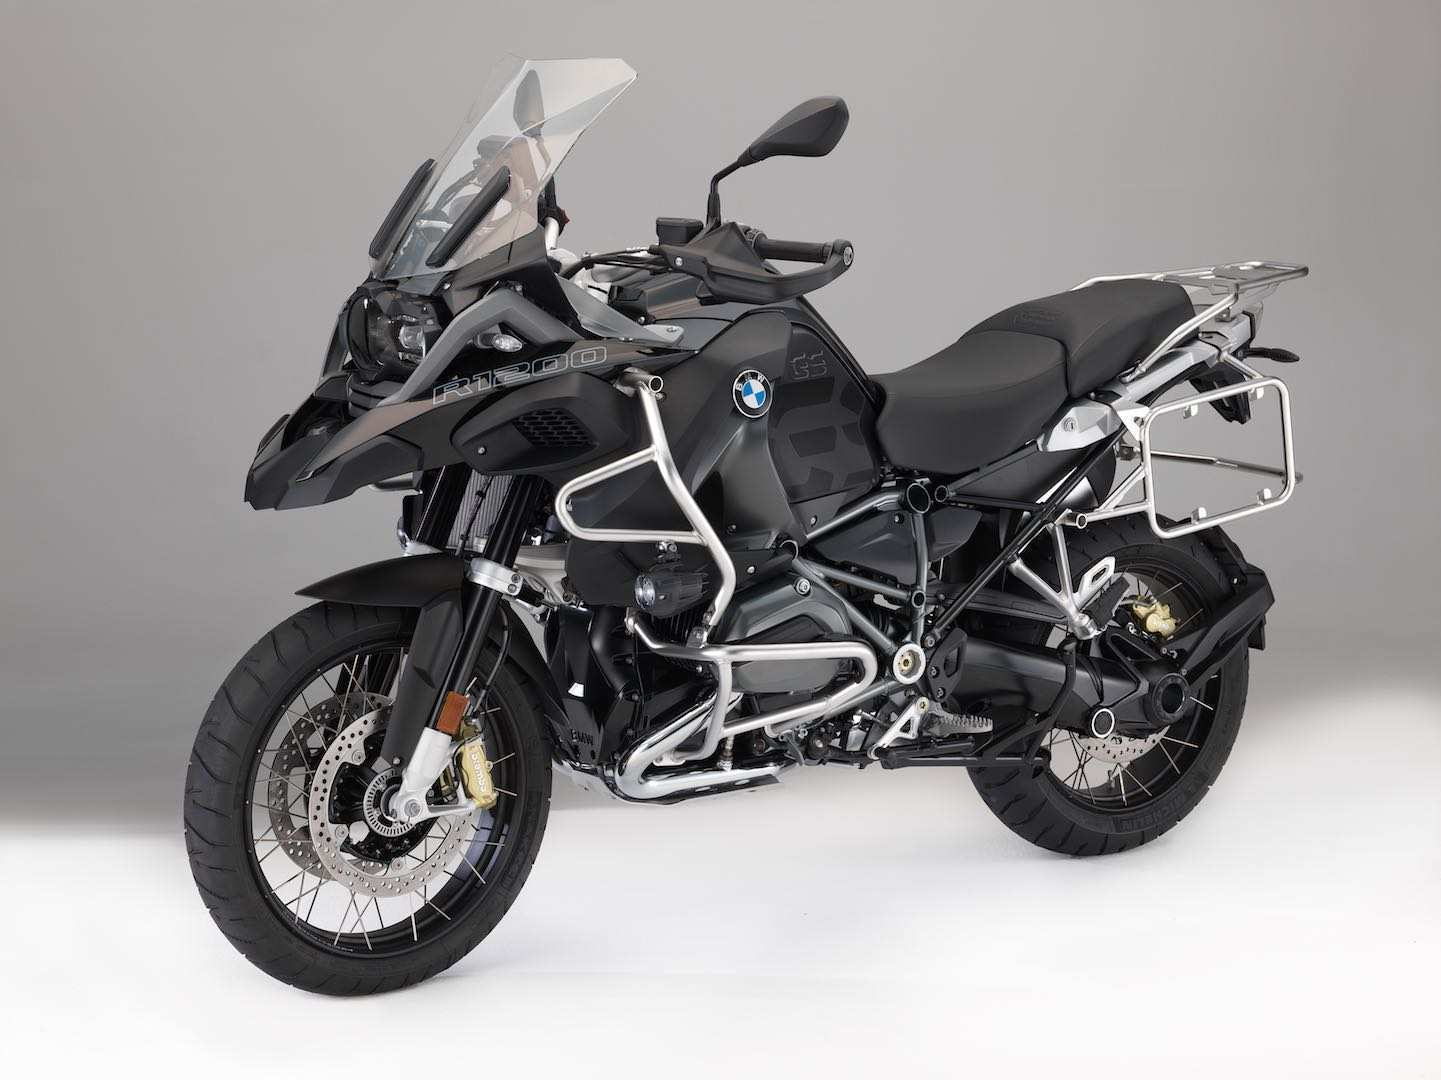 77 Concept of 2020 Bmw R1200Gs Research New by 2020 Bmw R1200Gs